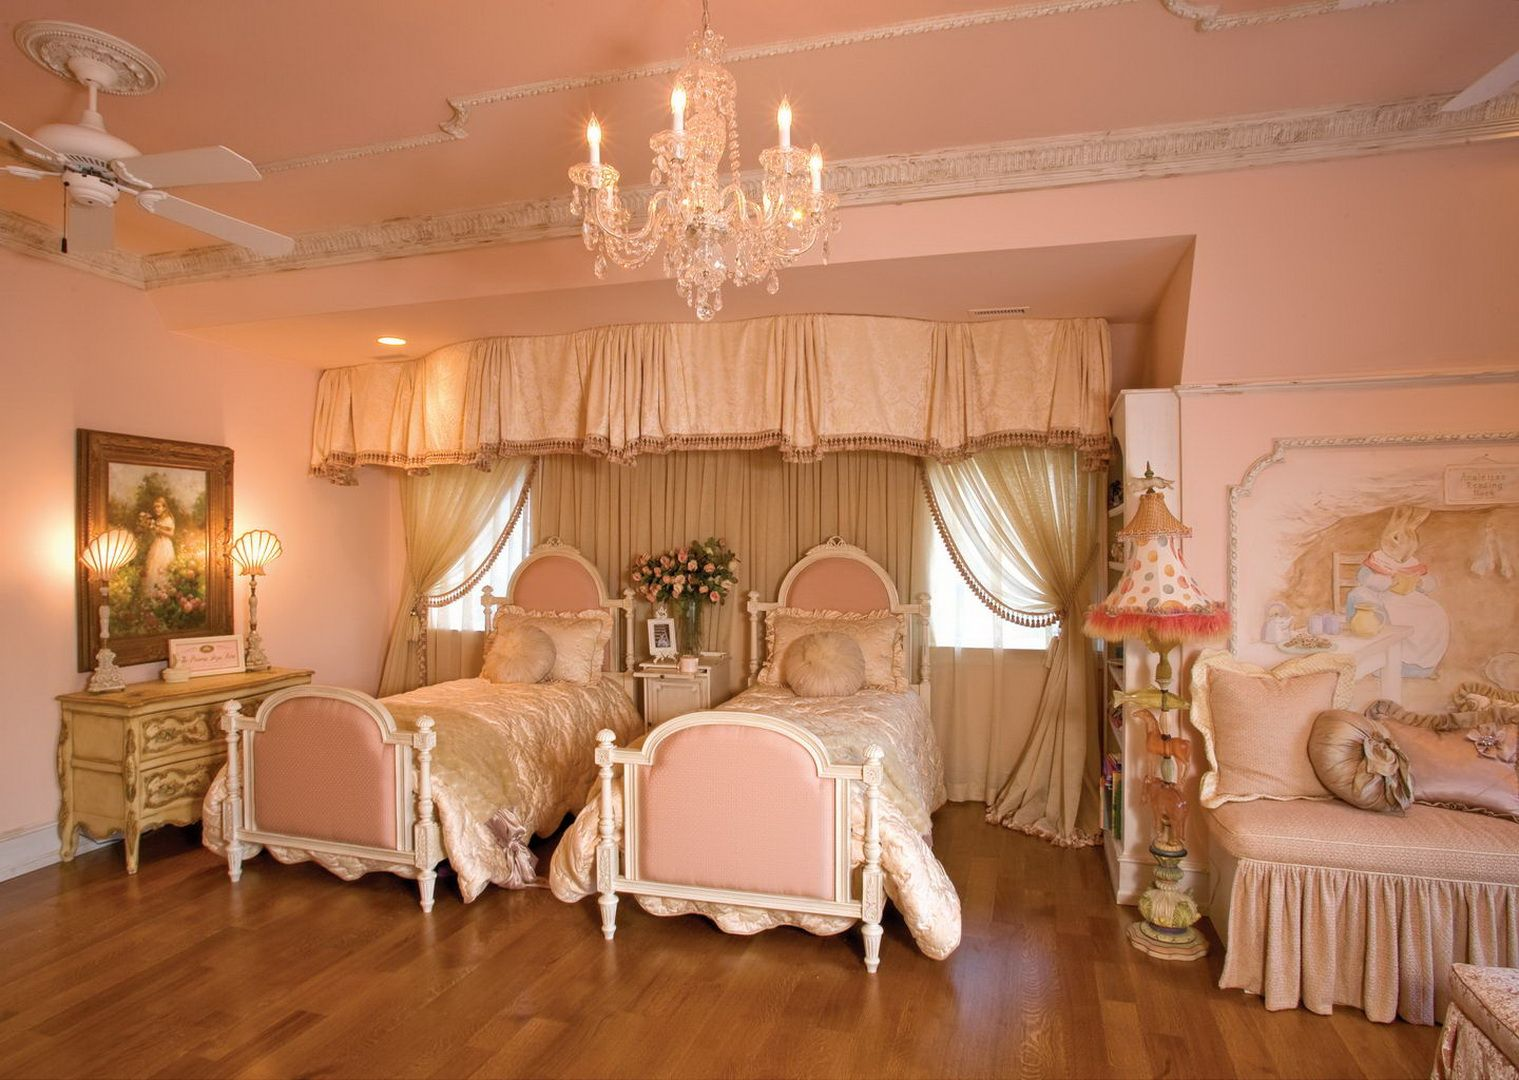 Mansion Bedrooms For Girls princess bedroom - french flair: showcase - cote d'azur - custom